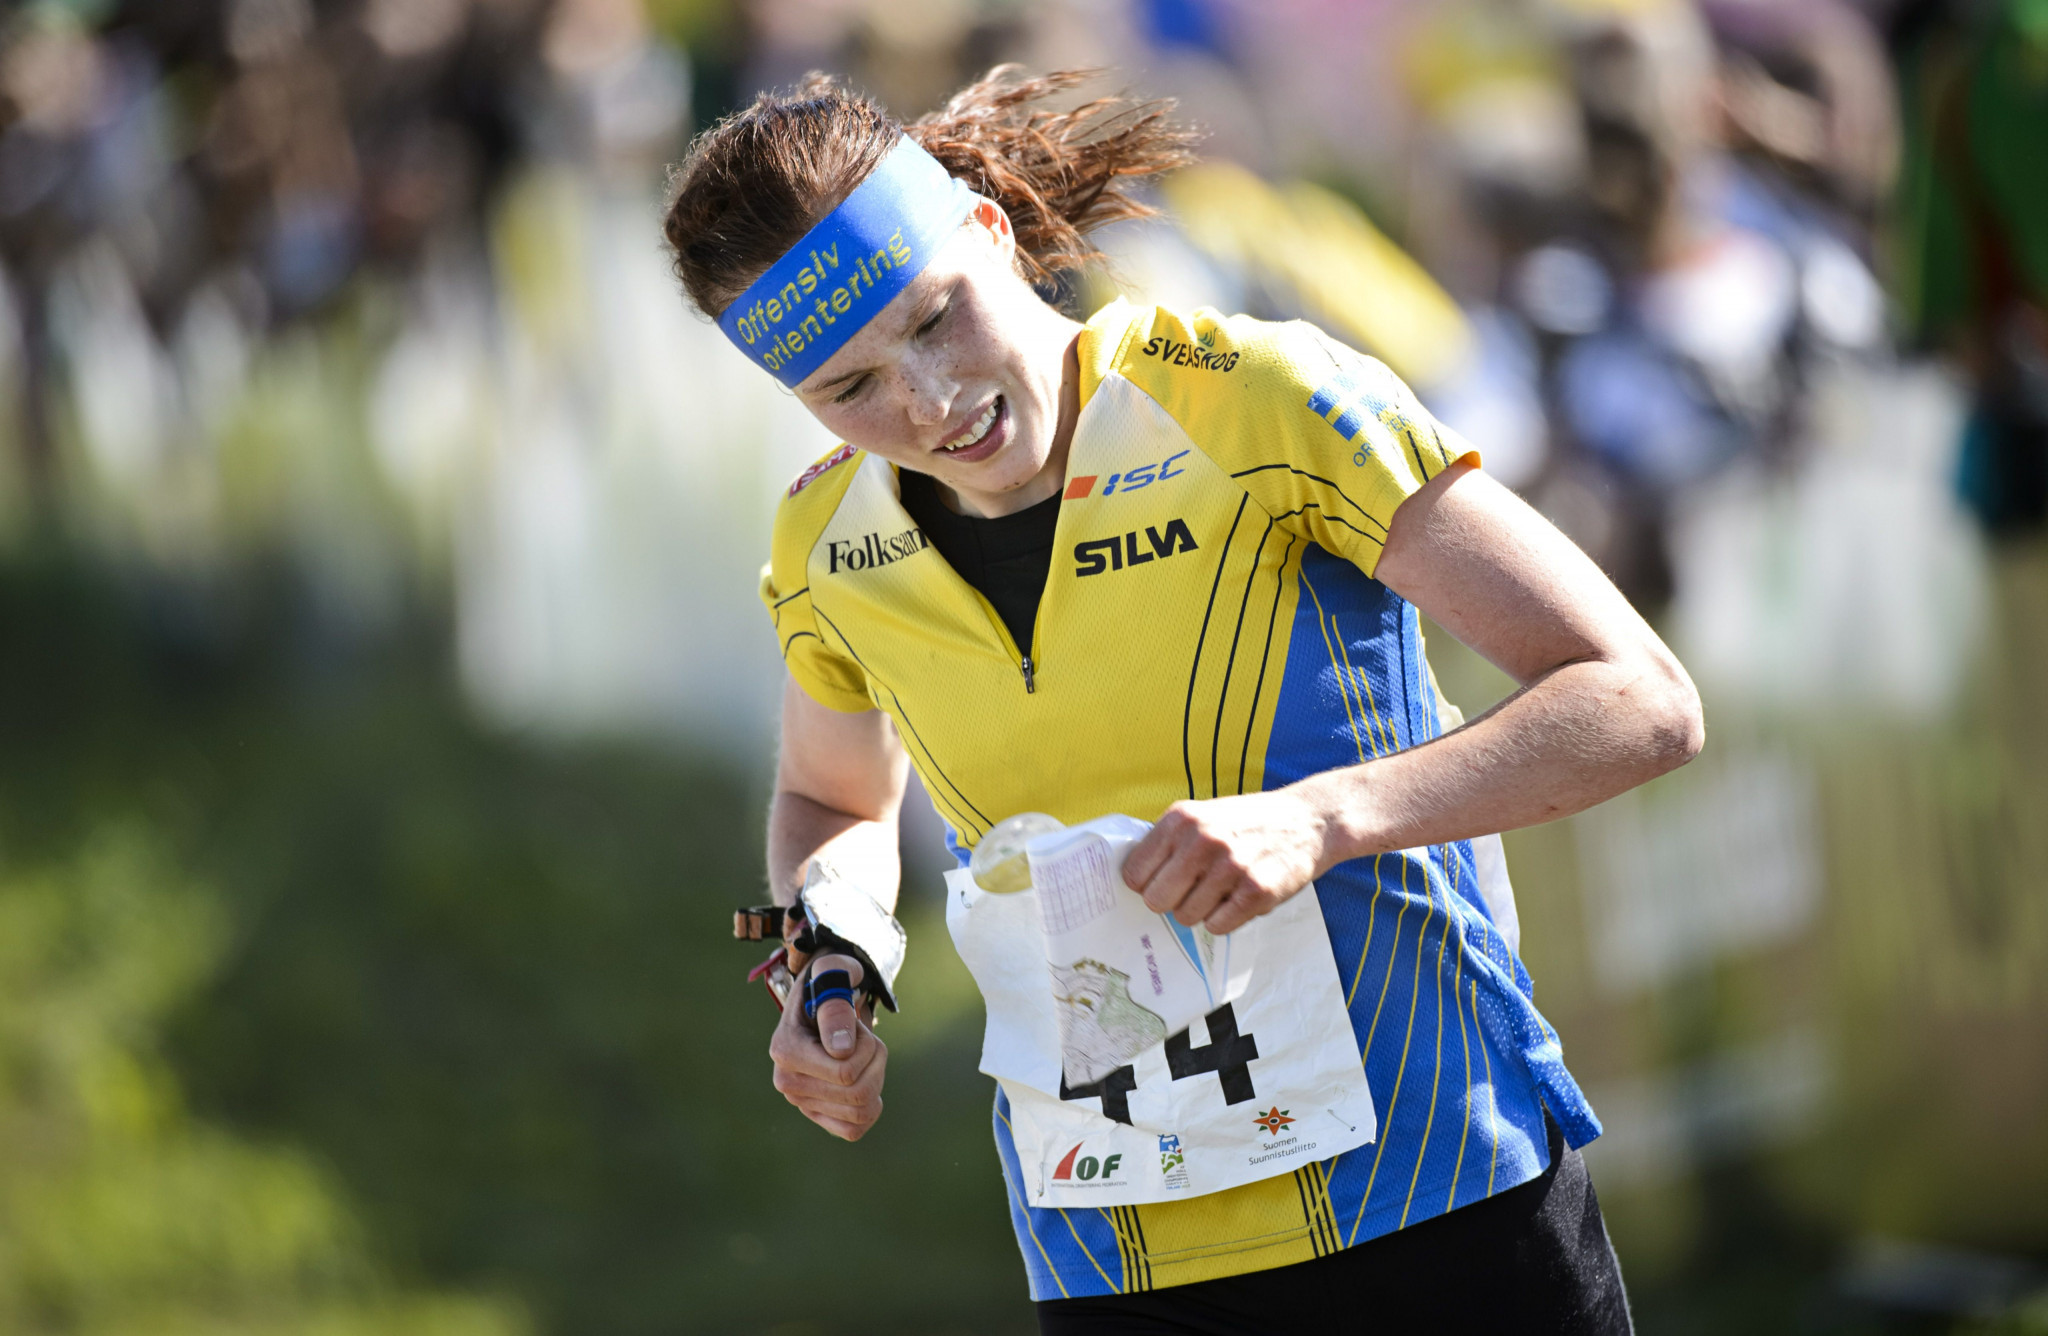 Sweden's Tove Alexandersson remains unbeatable as she won her fifth straight 2019 Orienteering World Cup event ©Getty Images